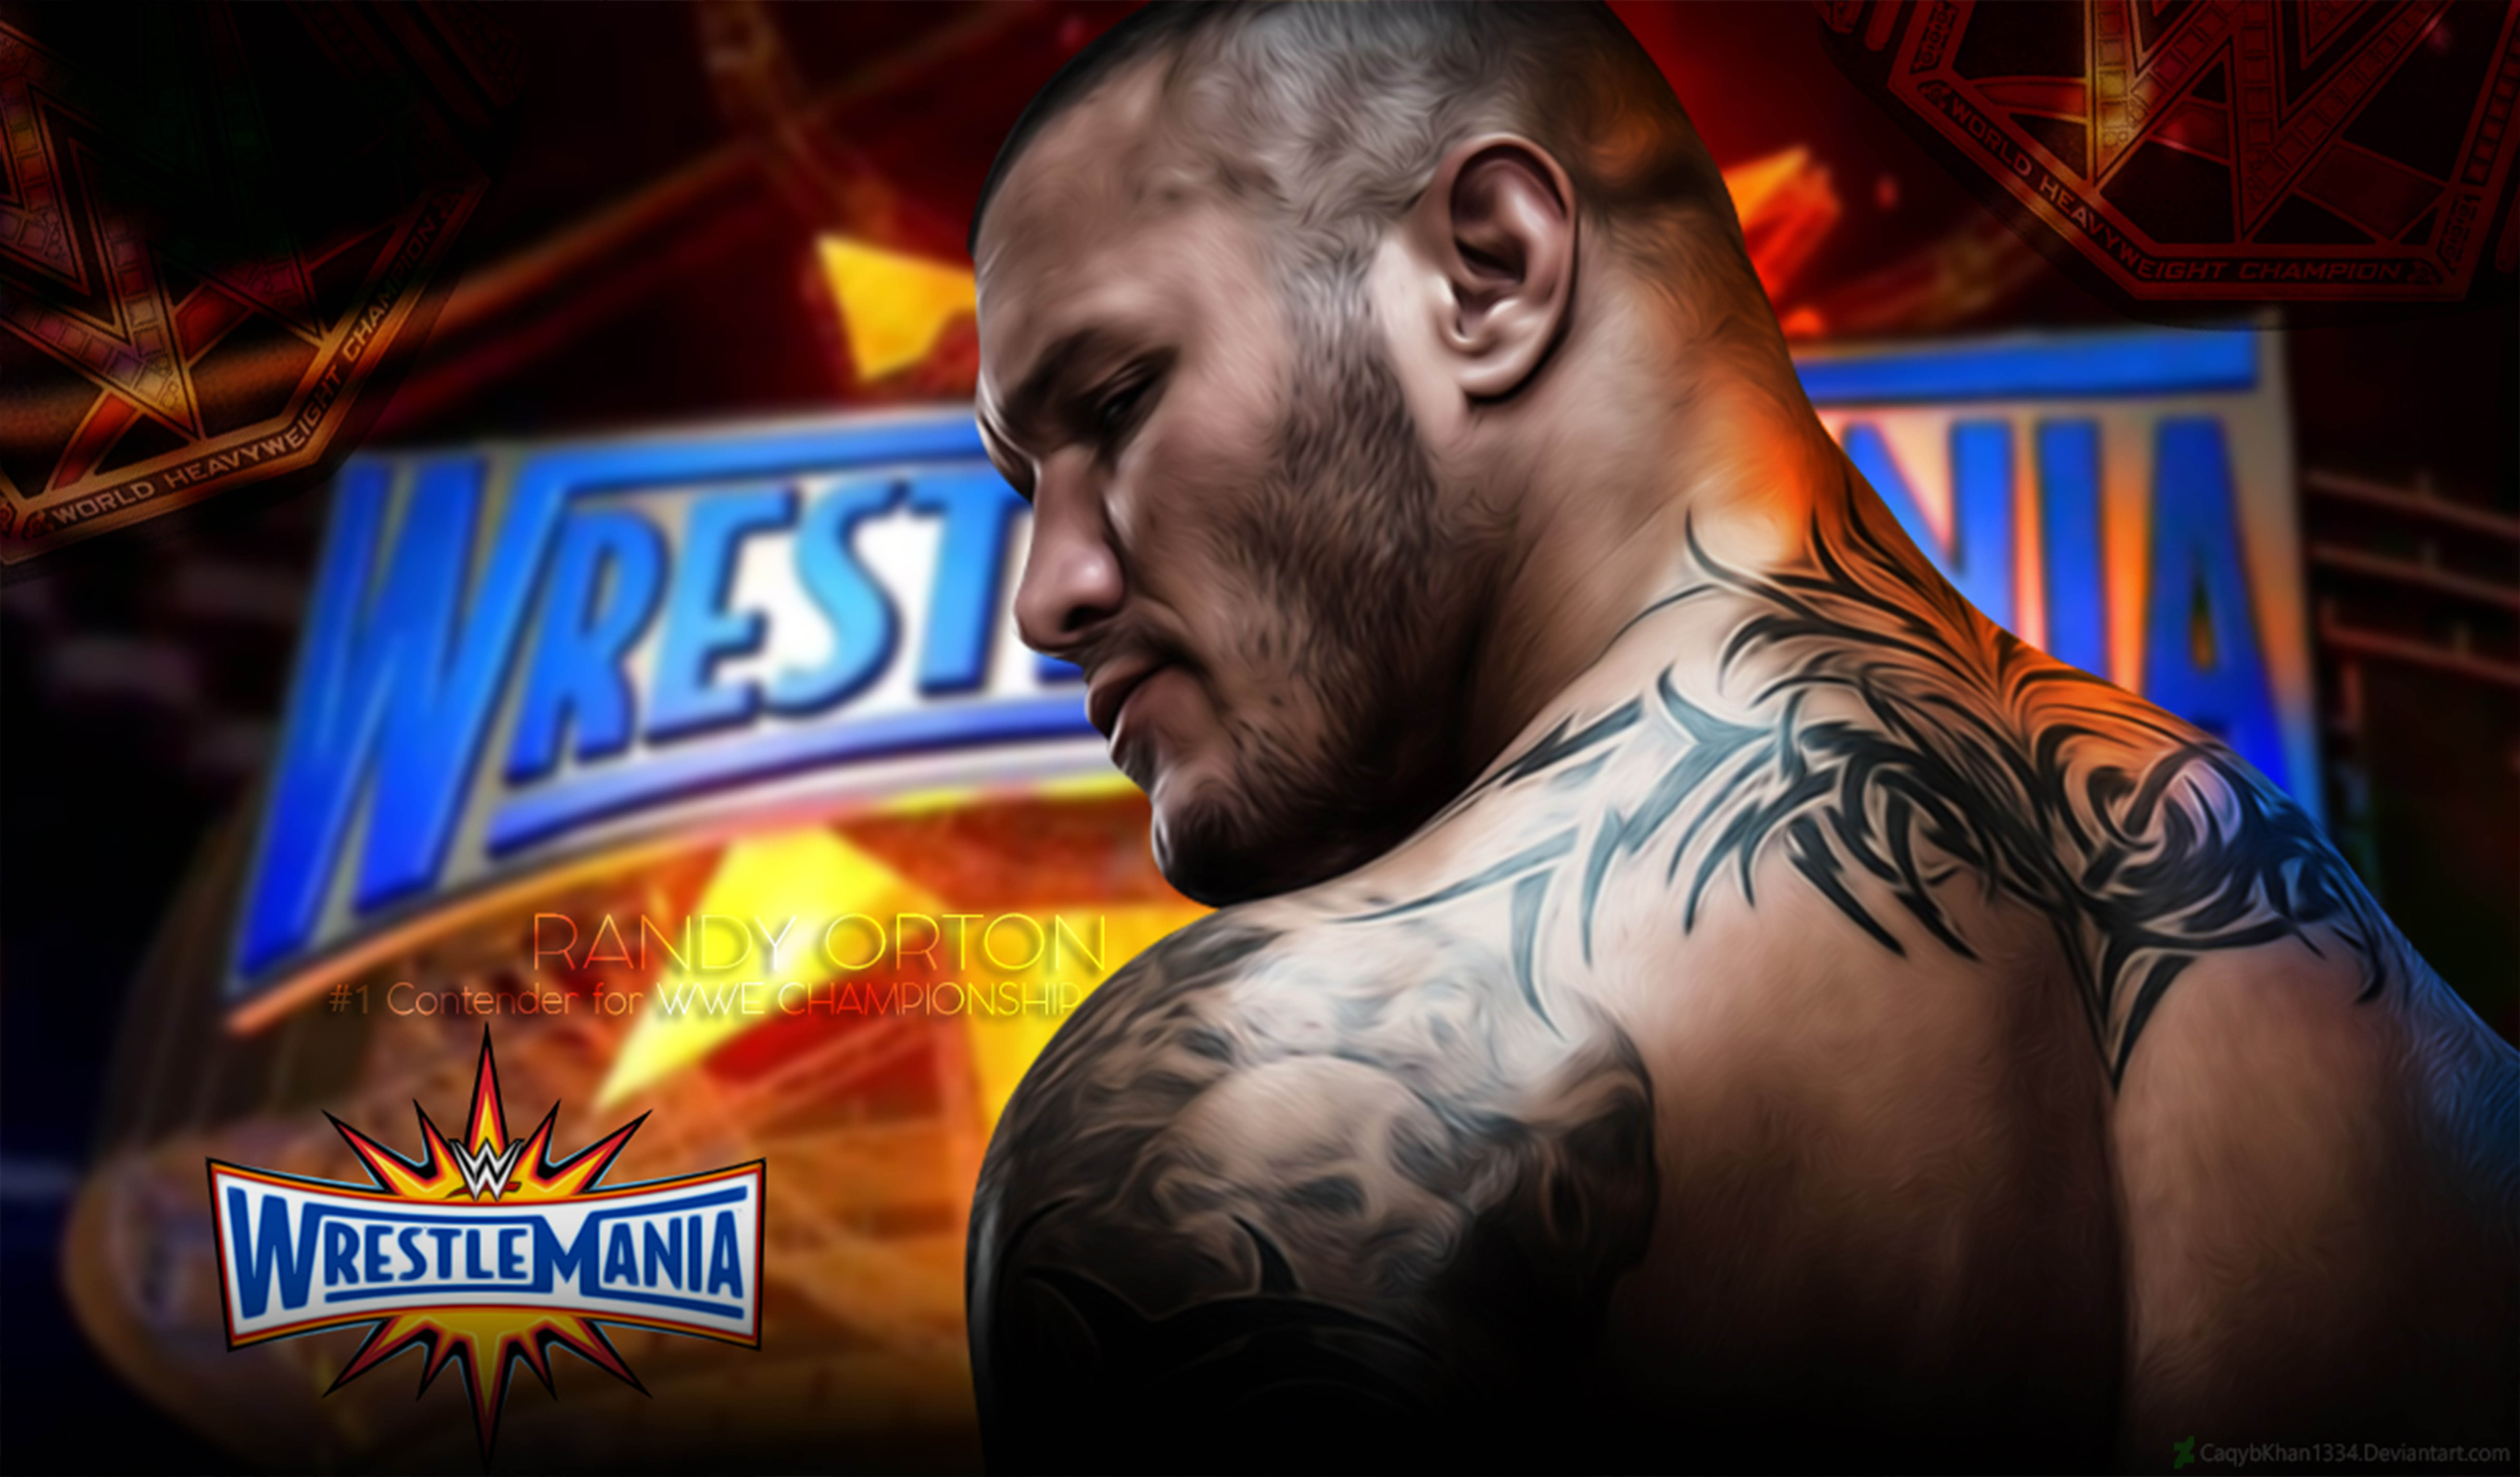 Wrestlemania 33 Wallpaper Banner Ft Randy Orton By CaqybKhan1334